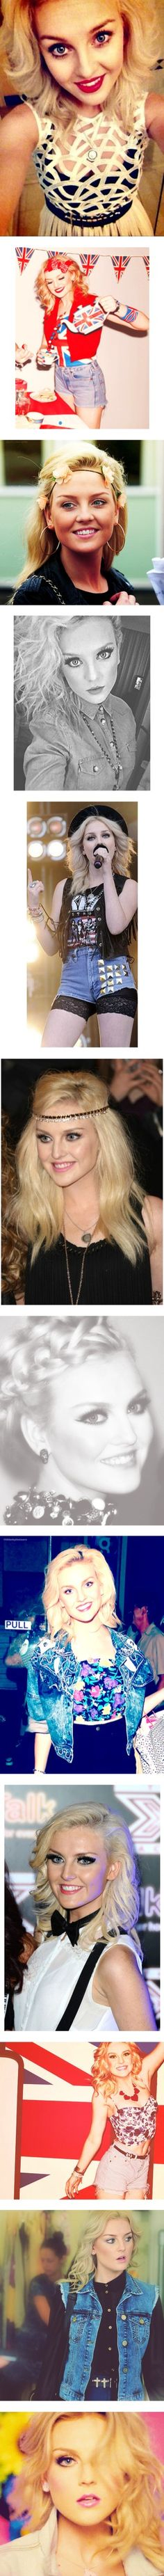 No hate Perrie Louise Edwards is beautiful no doubt about it just accept her as she is gorgeous and beautiful!